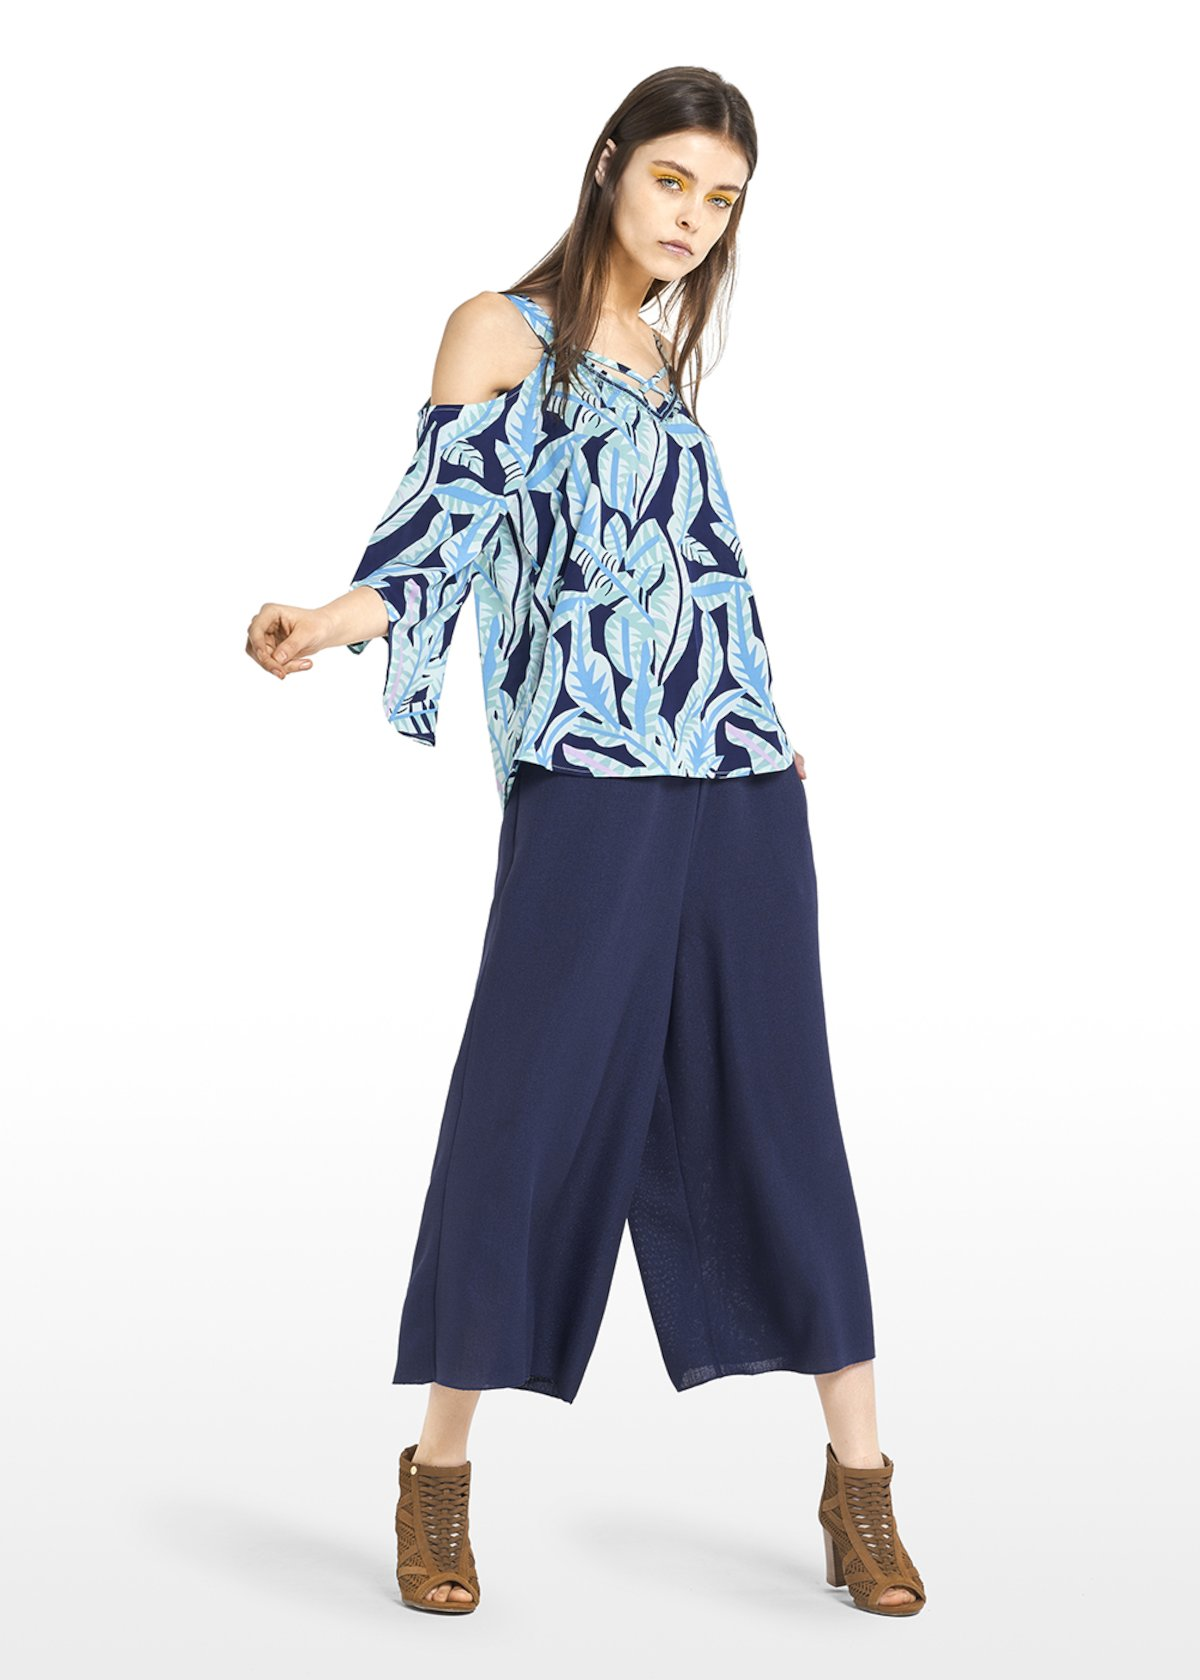 Blusa all over printed Corinne con dettaglio criss cross allo scollo - Medium Blue\ Plant\ Fantasia - Donna